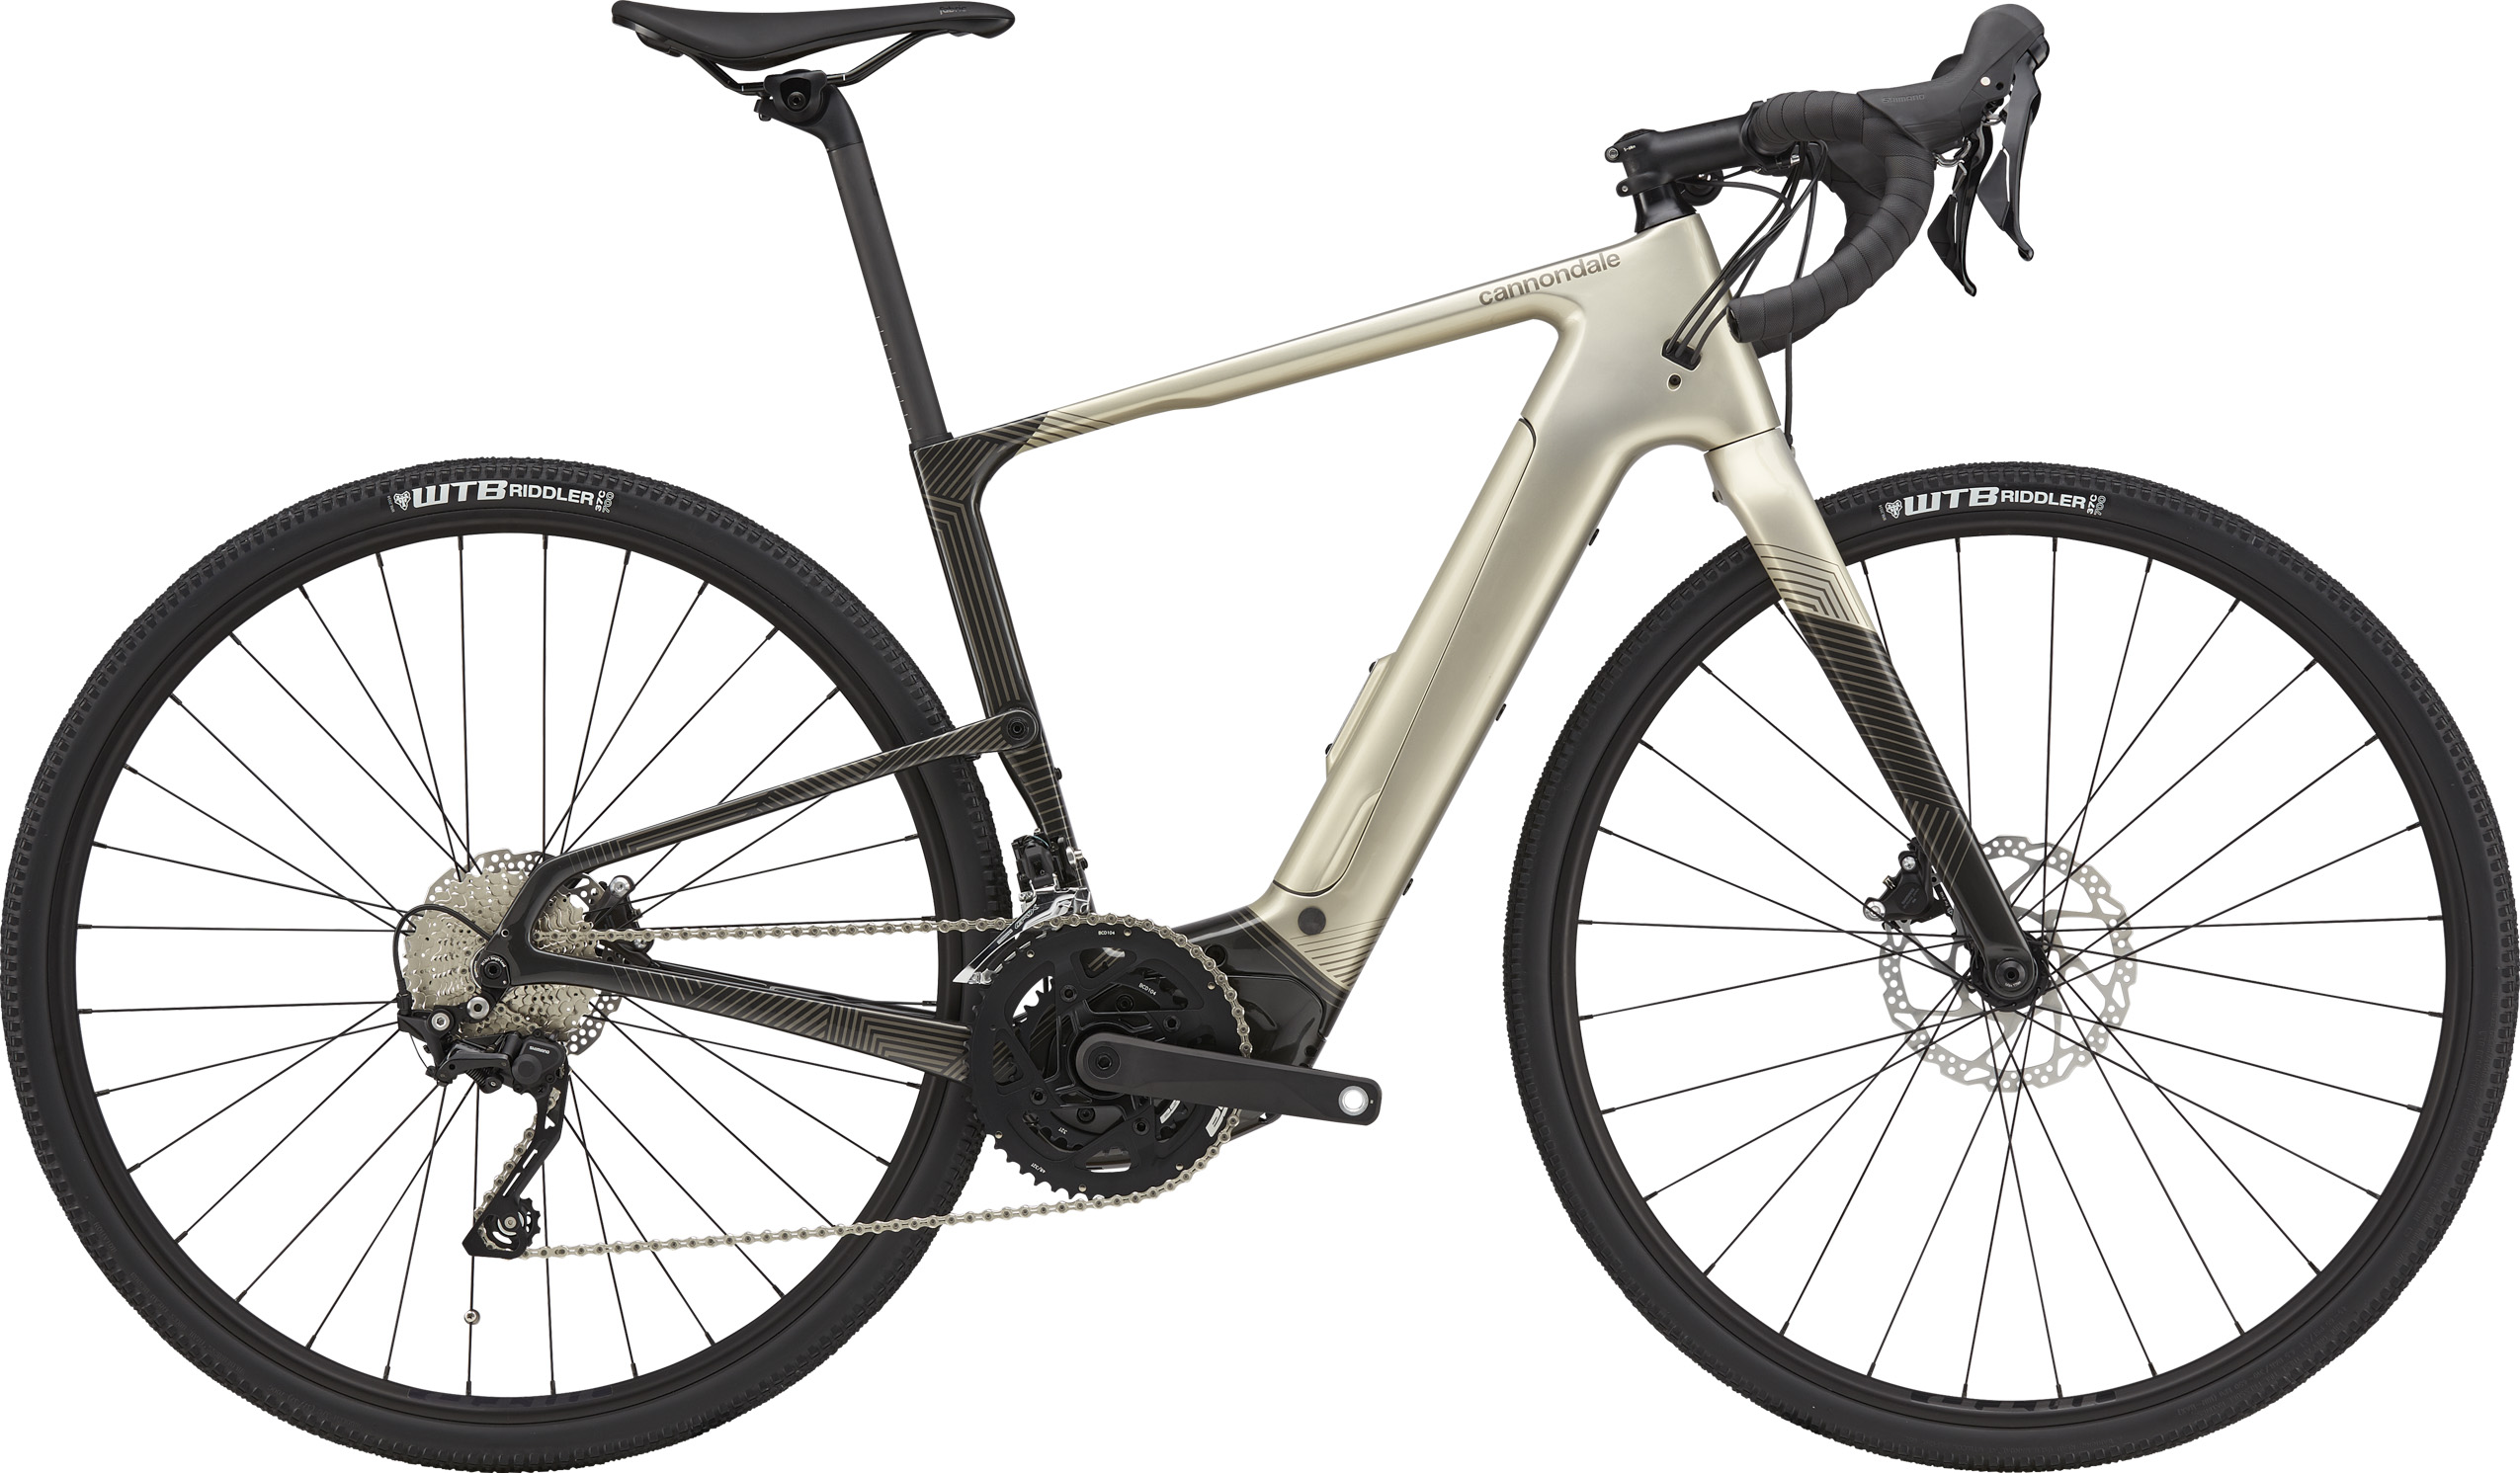 Cannondale Topstone Neo Carbon 4 Lefty Electric Bike 2021 Champagne